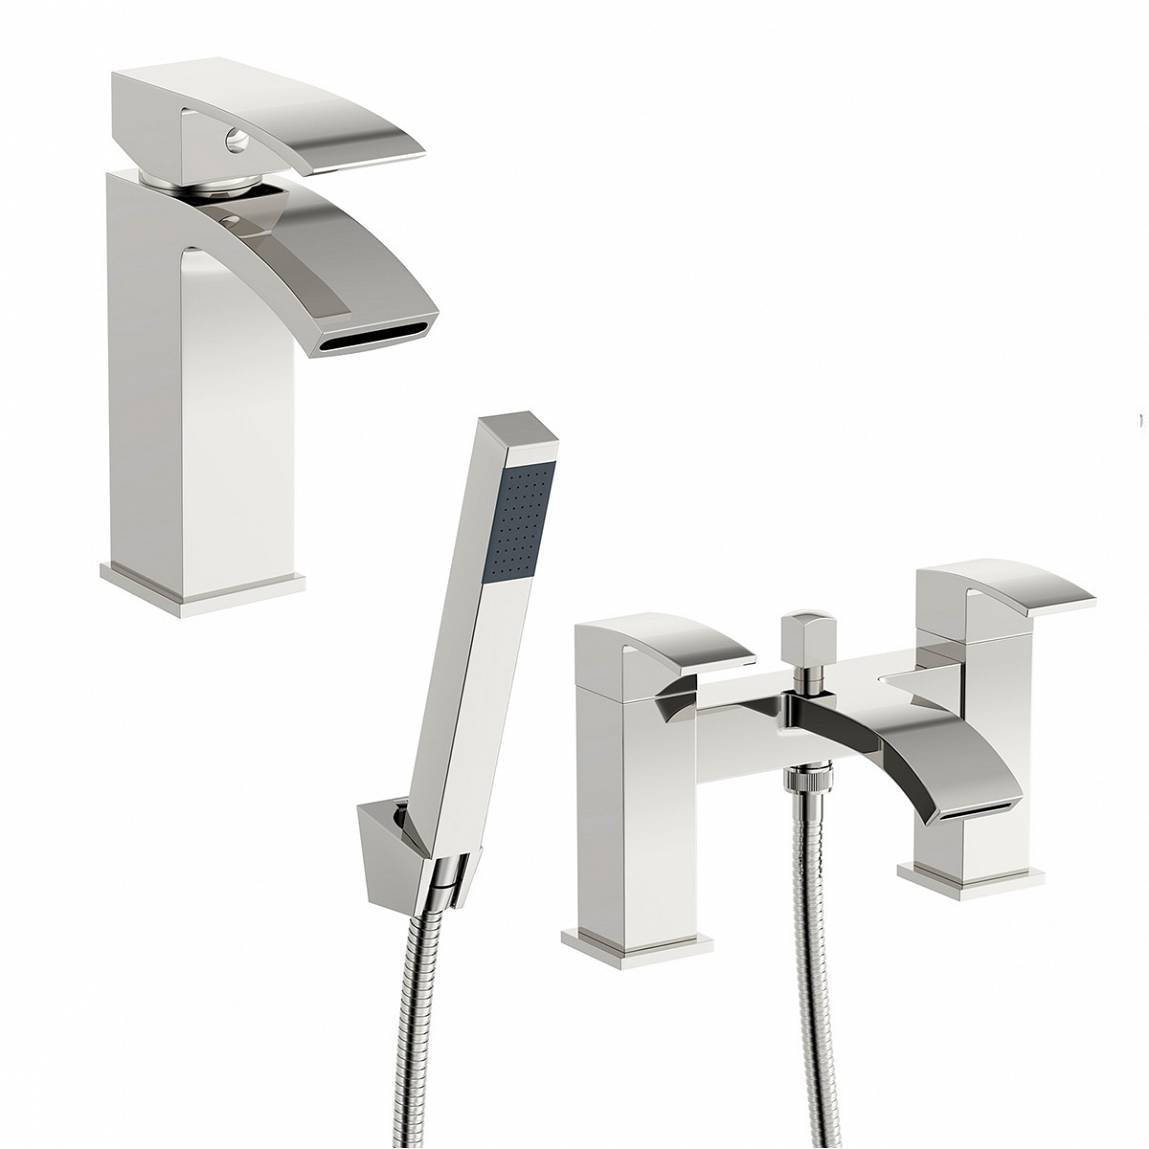 Orchard Wye basin and bath shower mixer tap pack